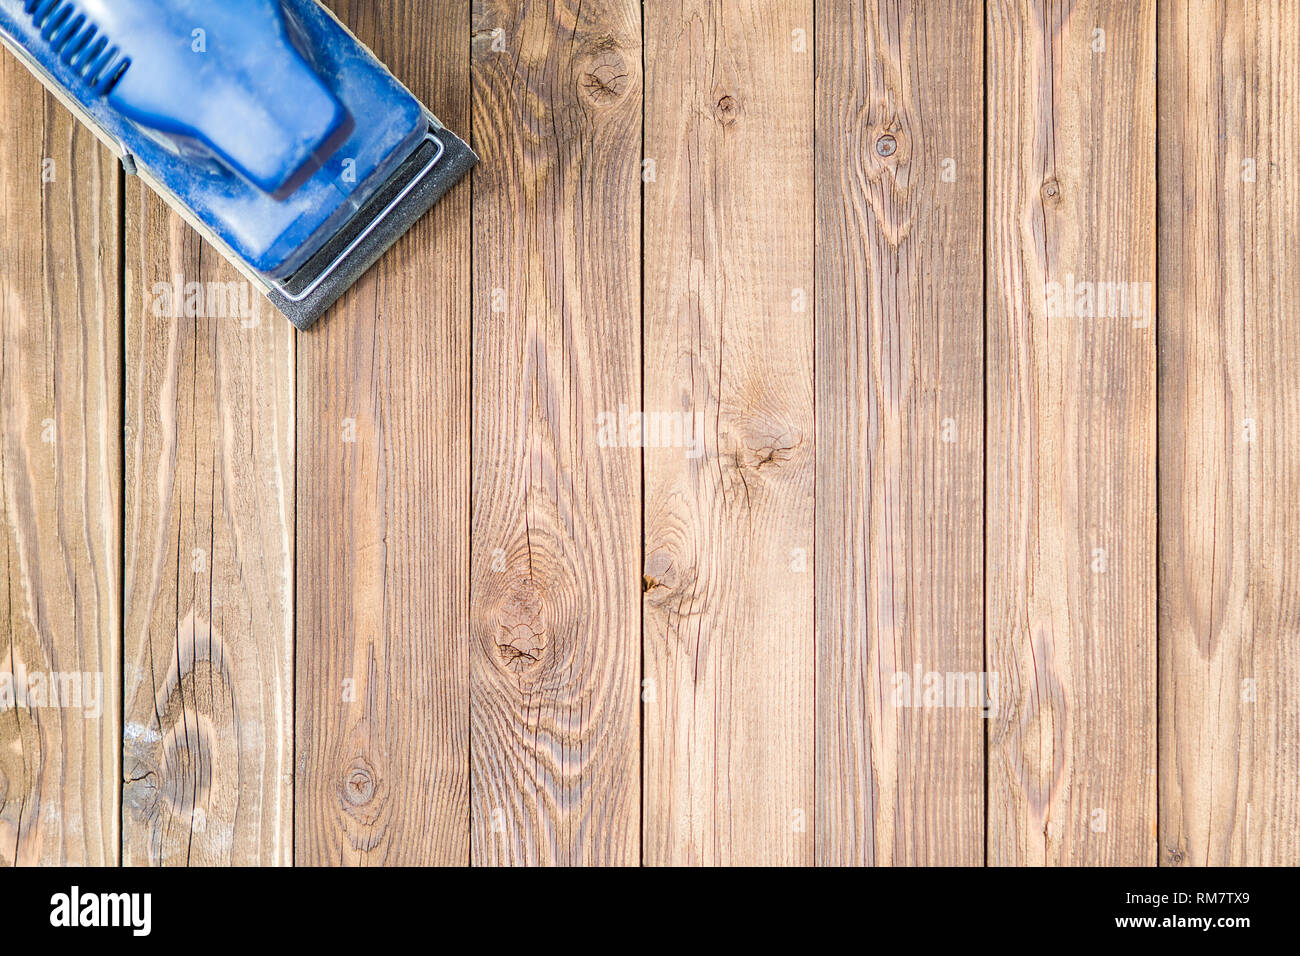 Wooden surface and blue grinder - Stock Image